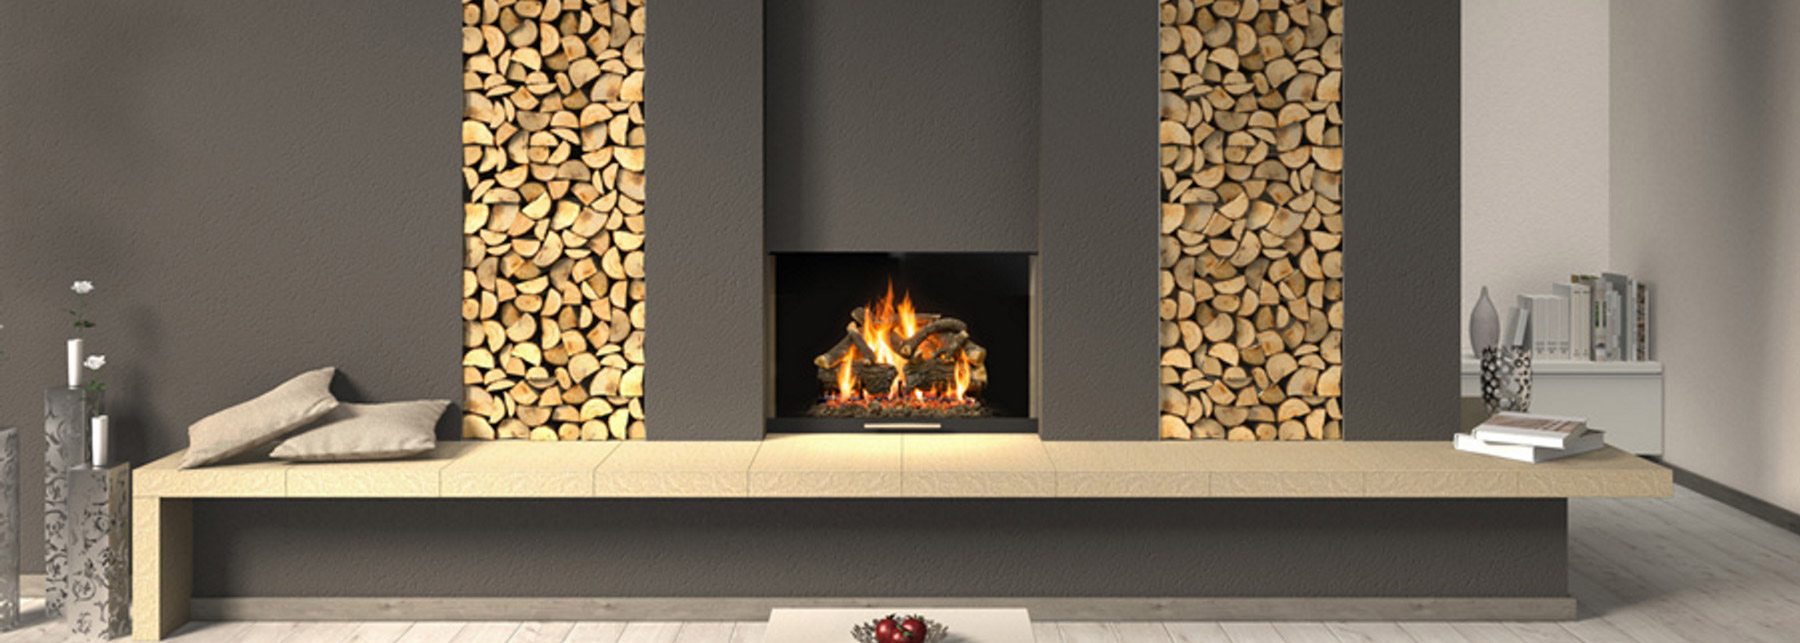 Propane Fireplace Repair Near Me Fireplace Store Online Store Colorado Fireplace Showrooms